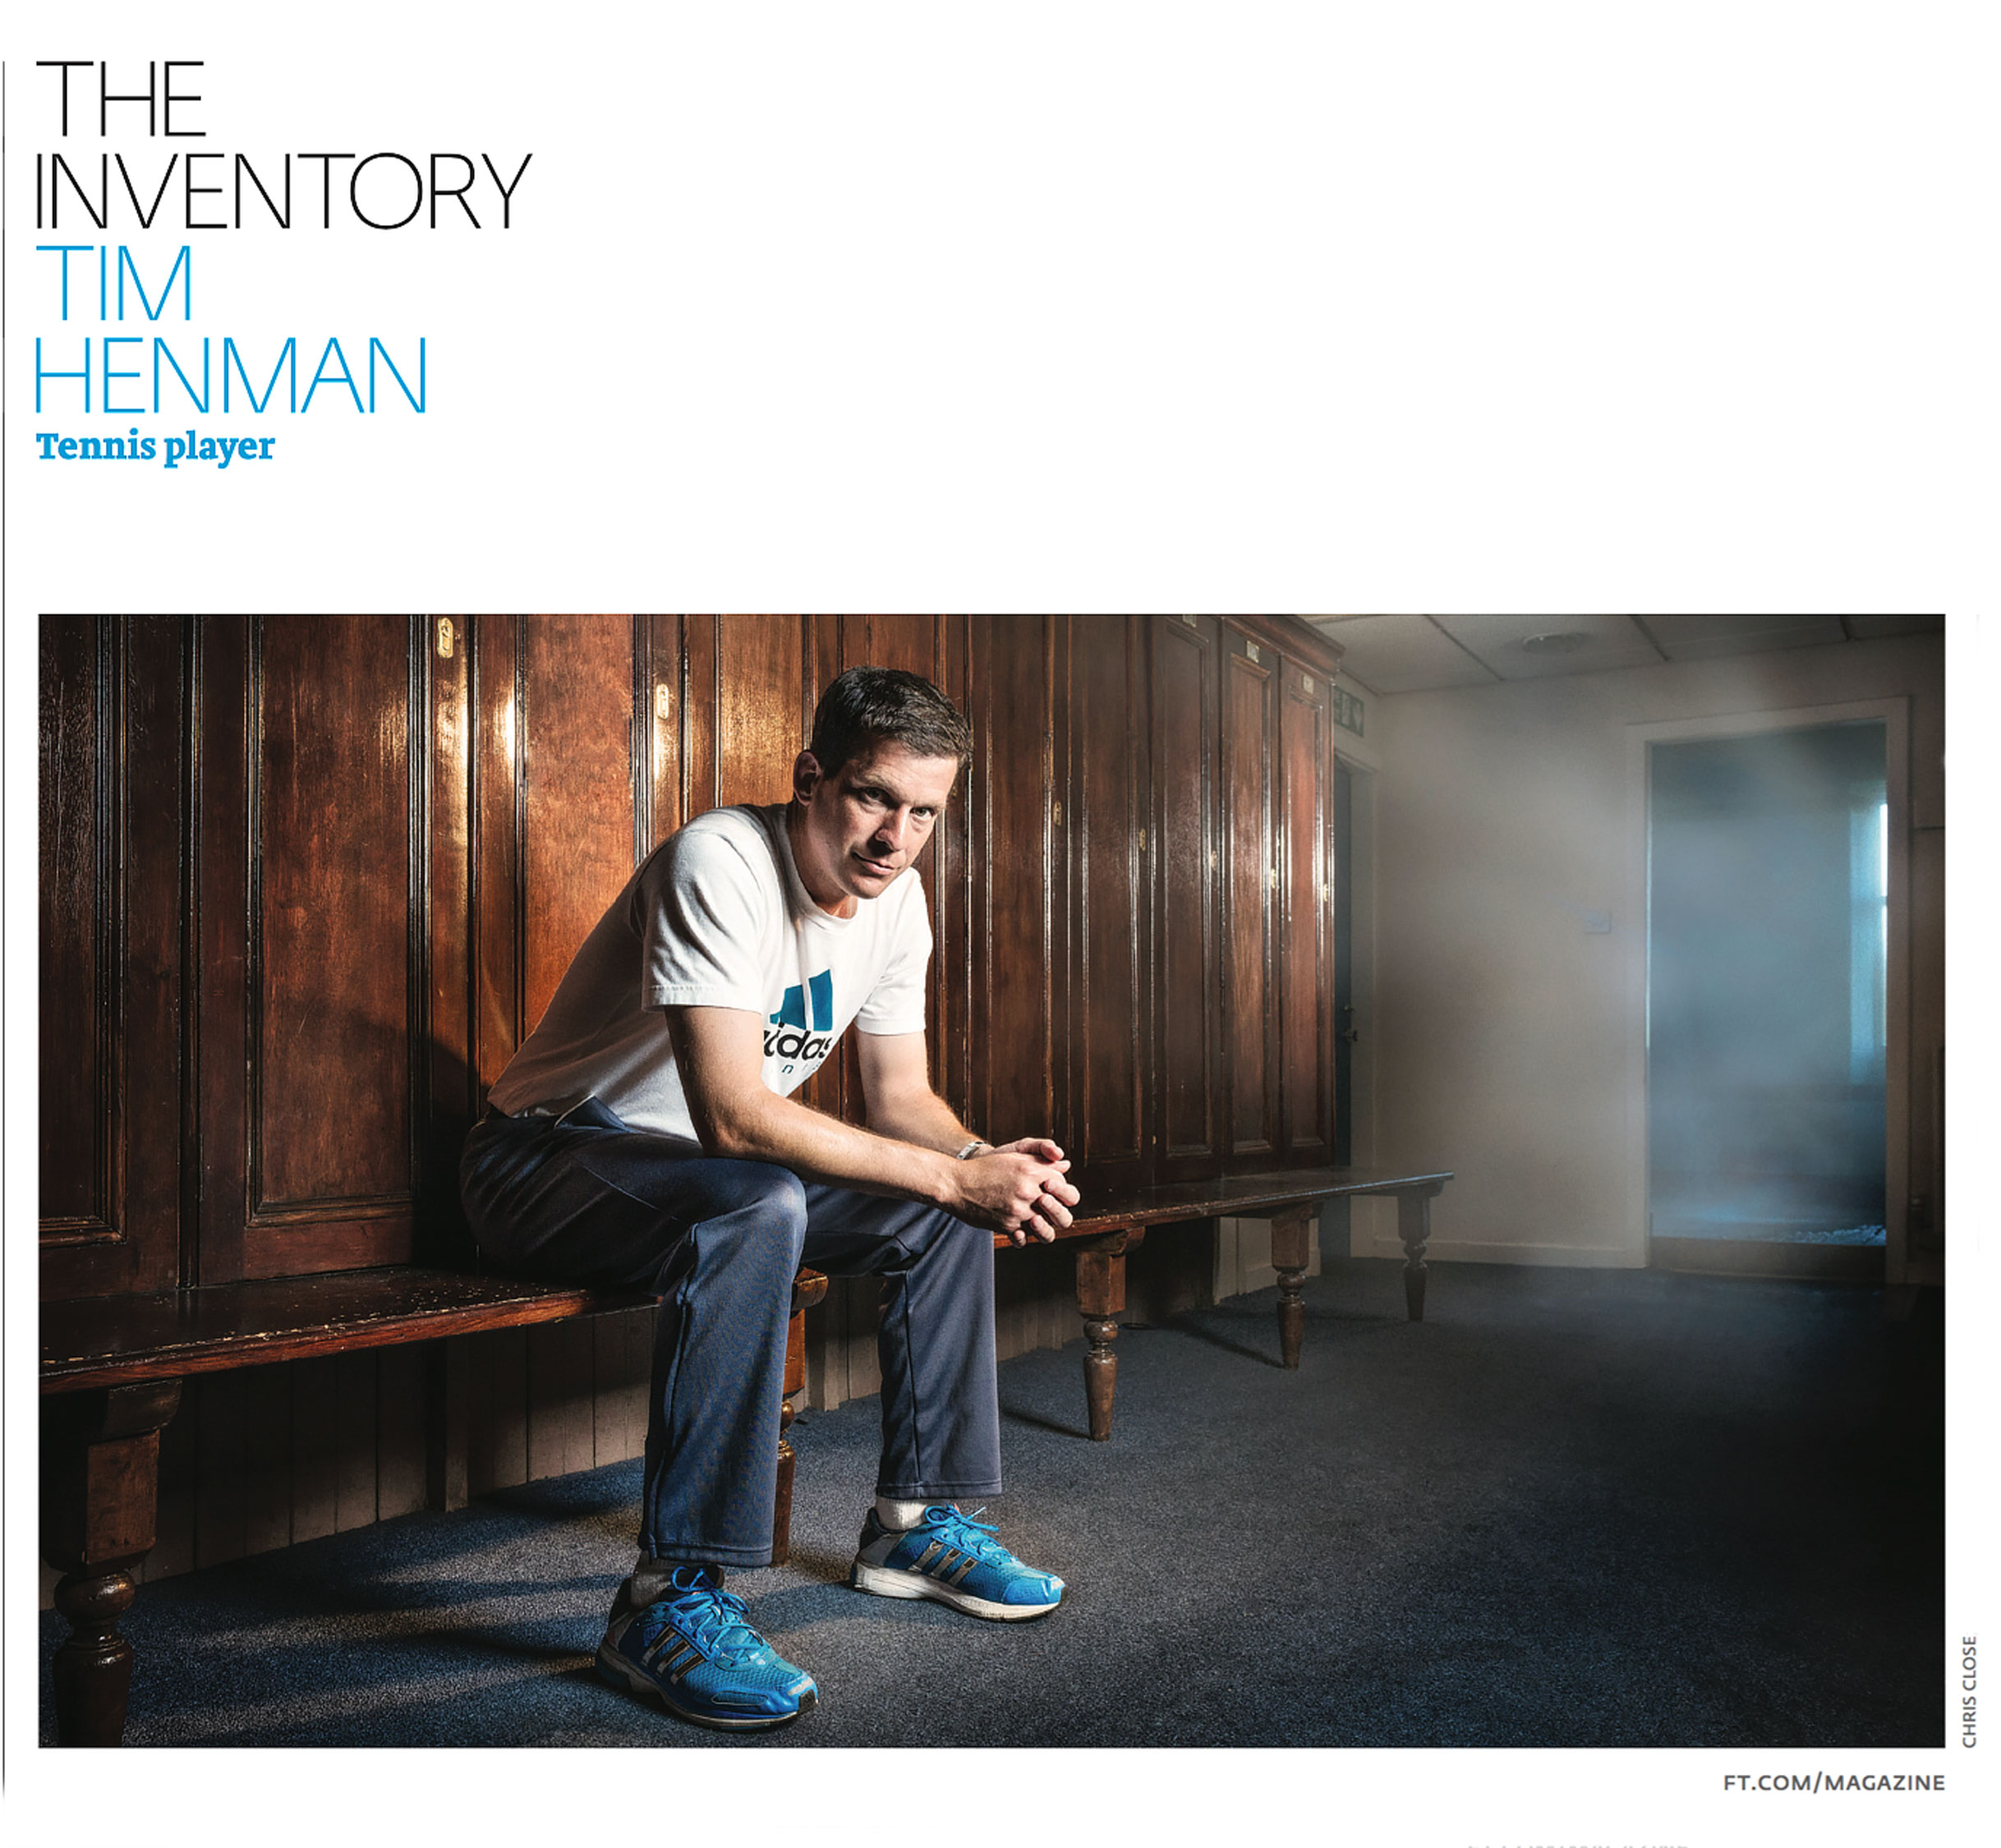 Tim-henman-Tear-Sheet